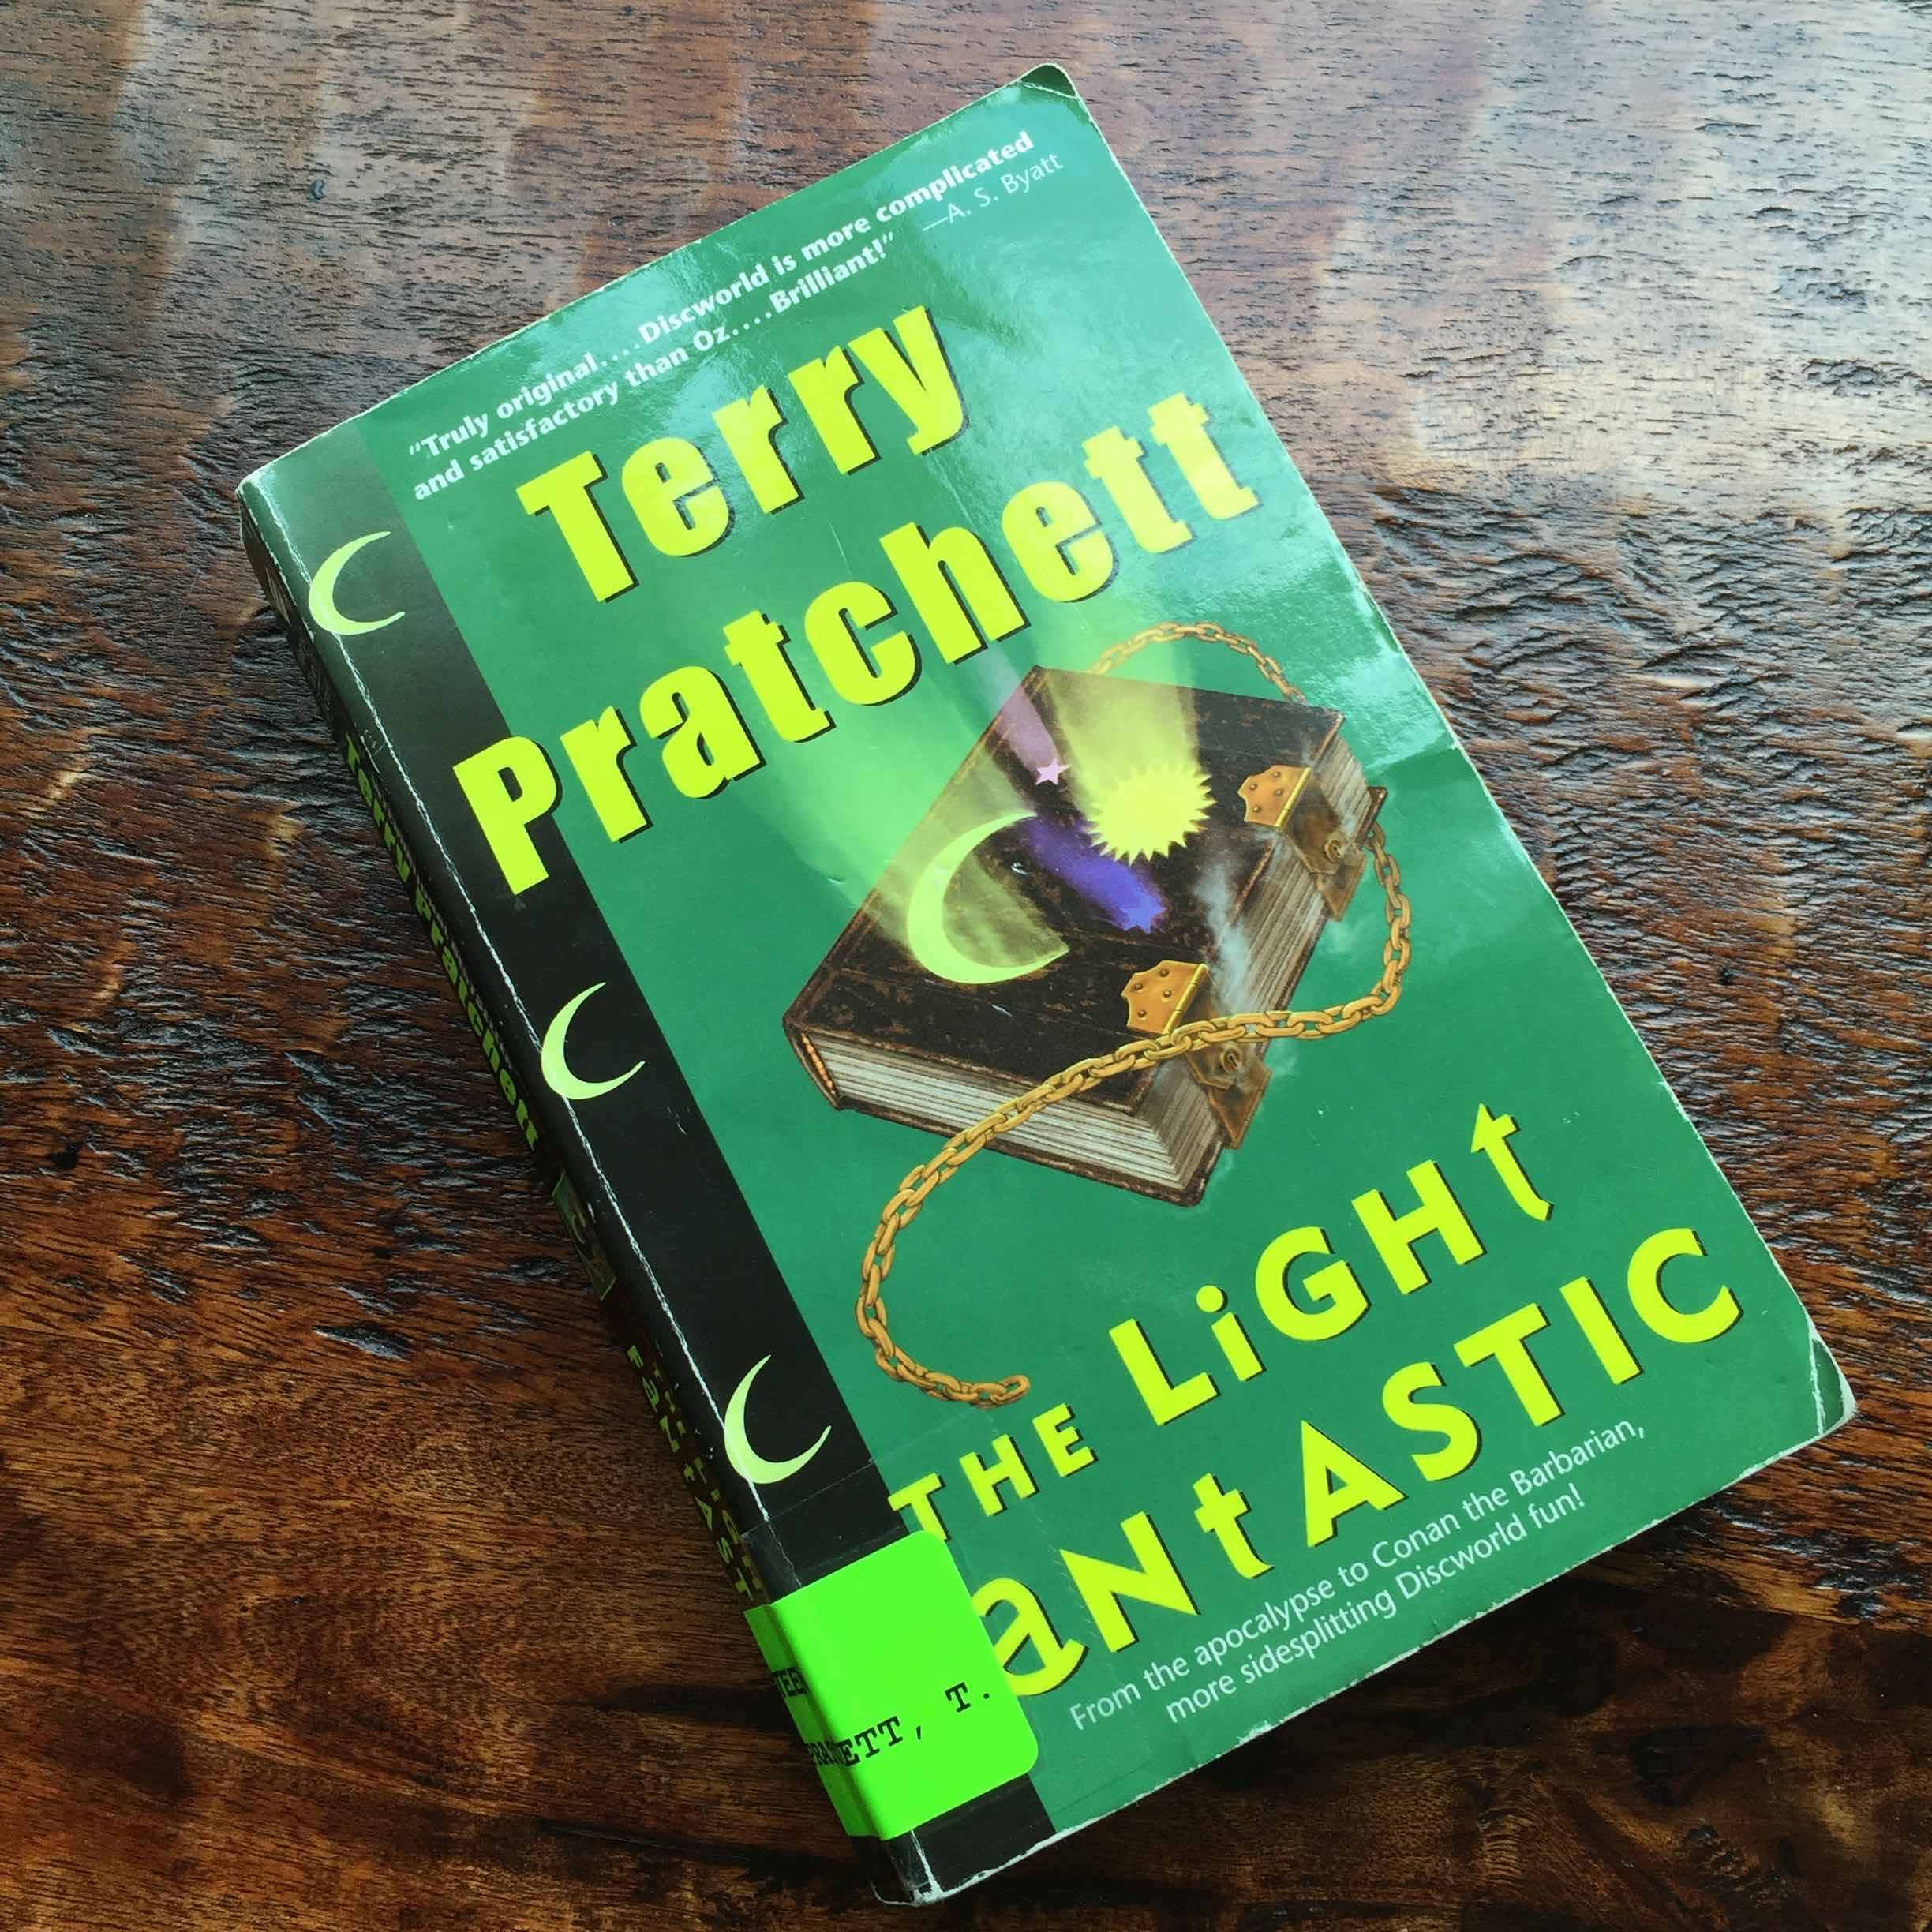 I am currently reading this book, Terry Pratchett's second in the Disc World series.